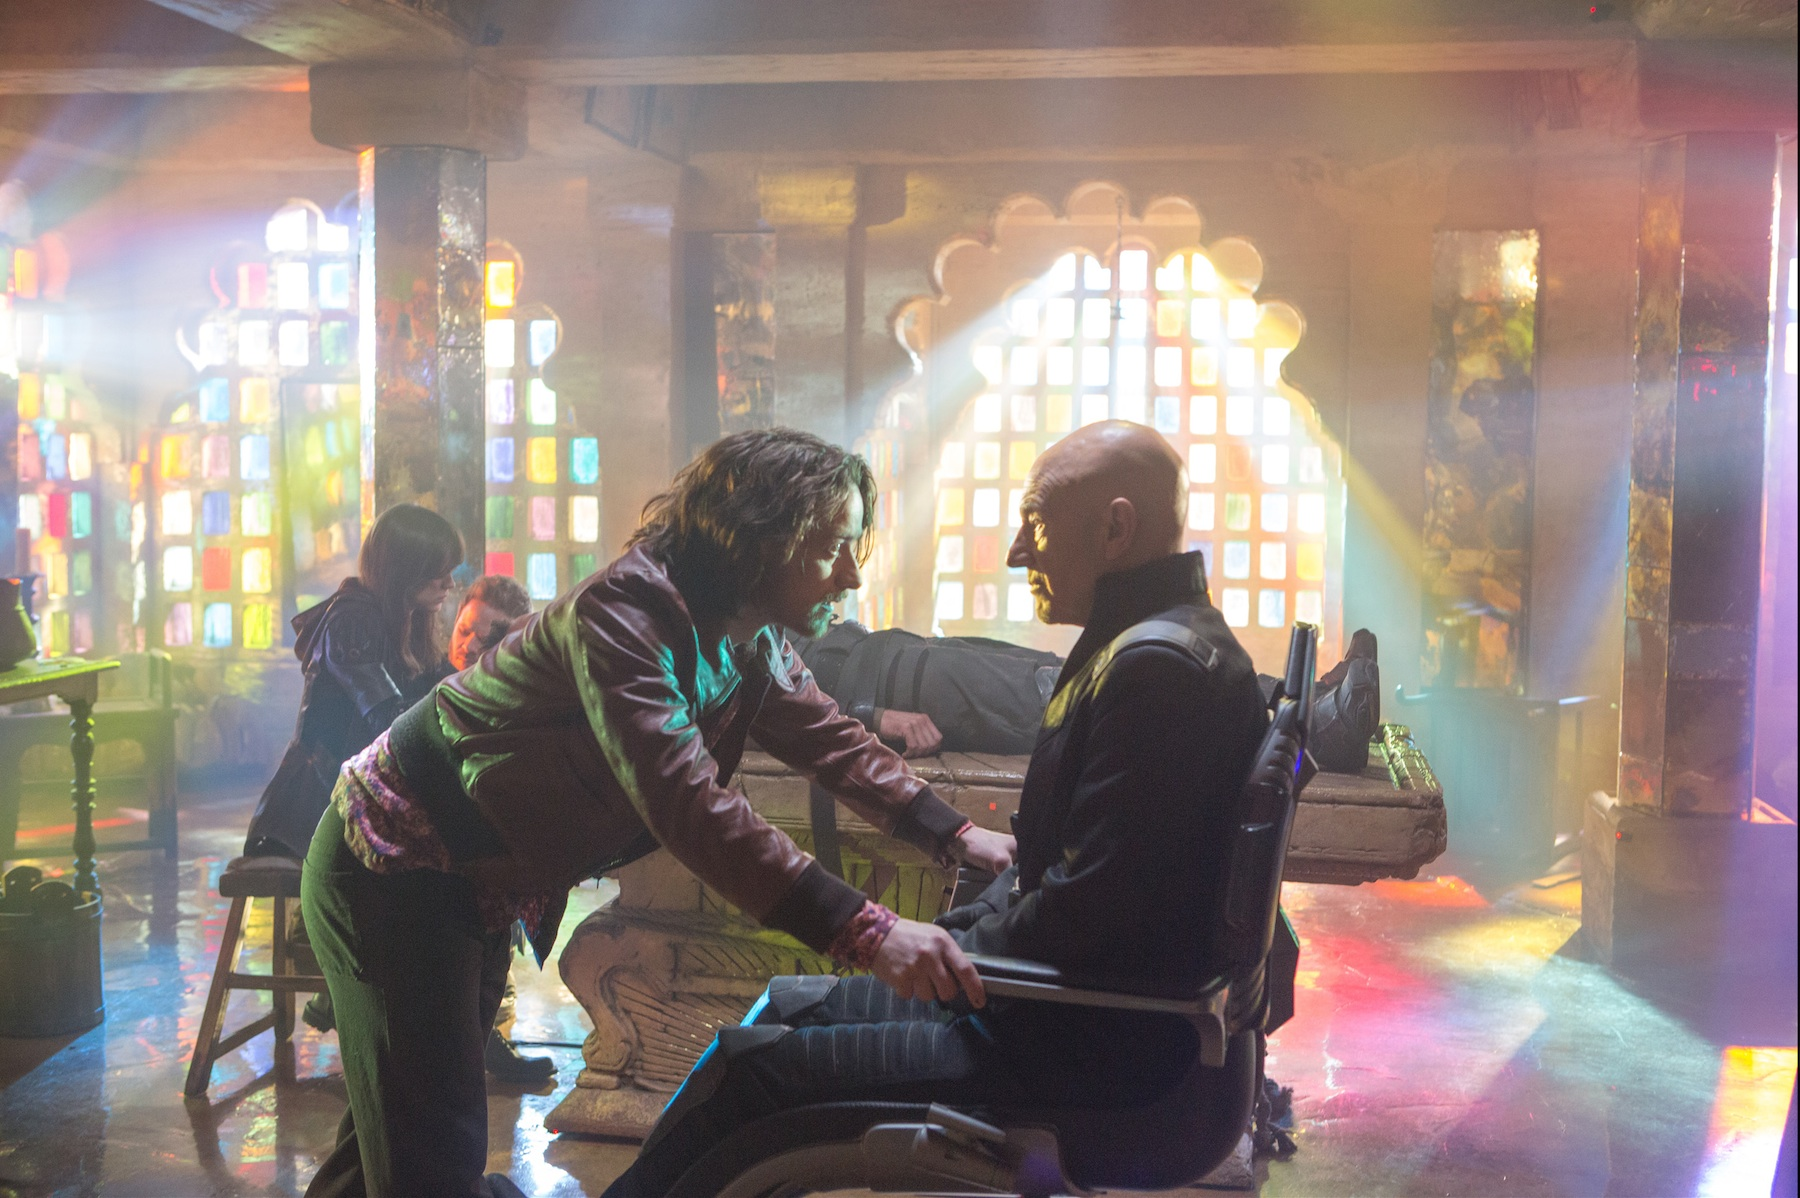 James McAvoy, left, as Professor X, with Patrick Stewart, right, as Professor X